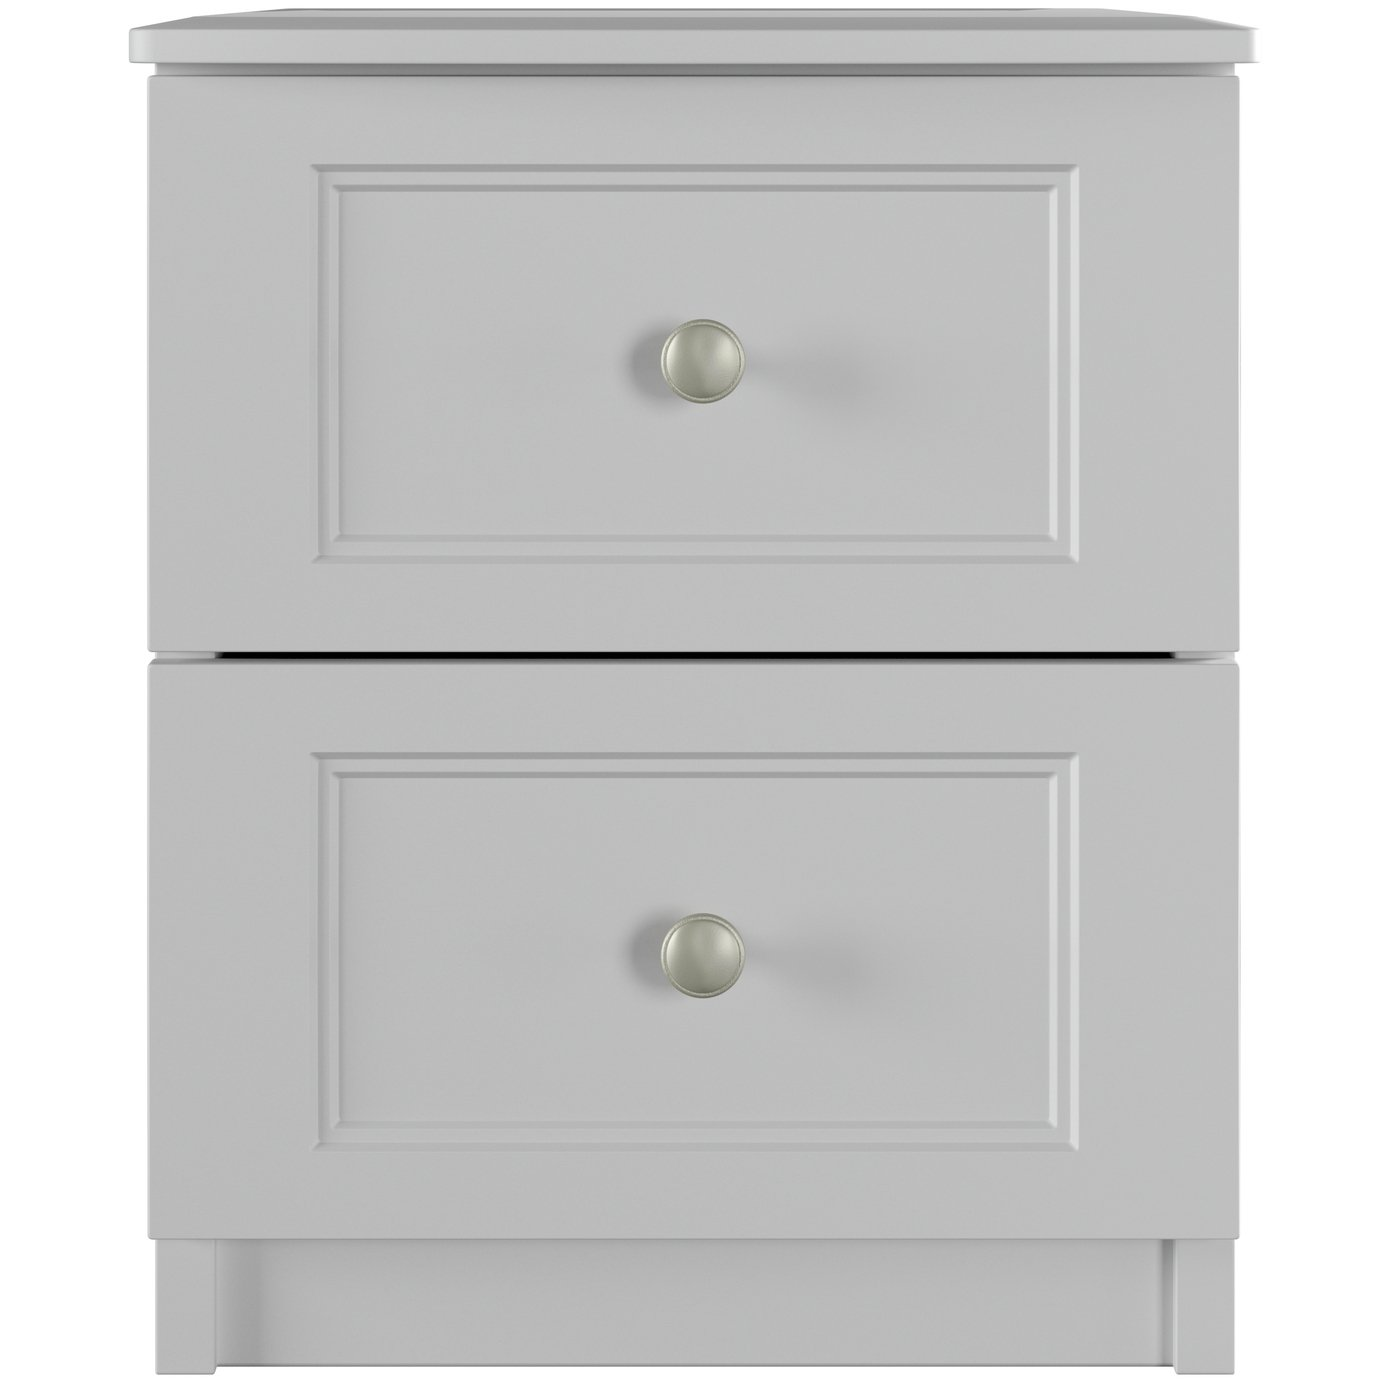 One Call Bexley 2 Drawer Bedside Table - Grey